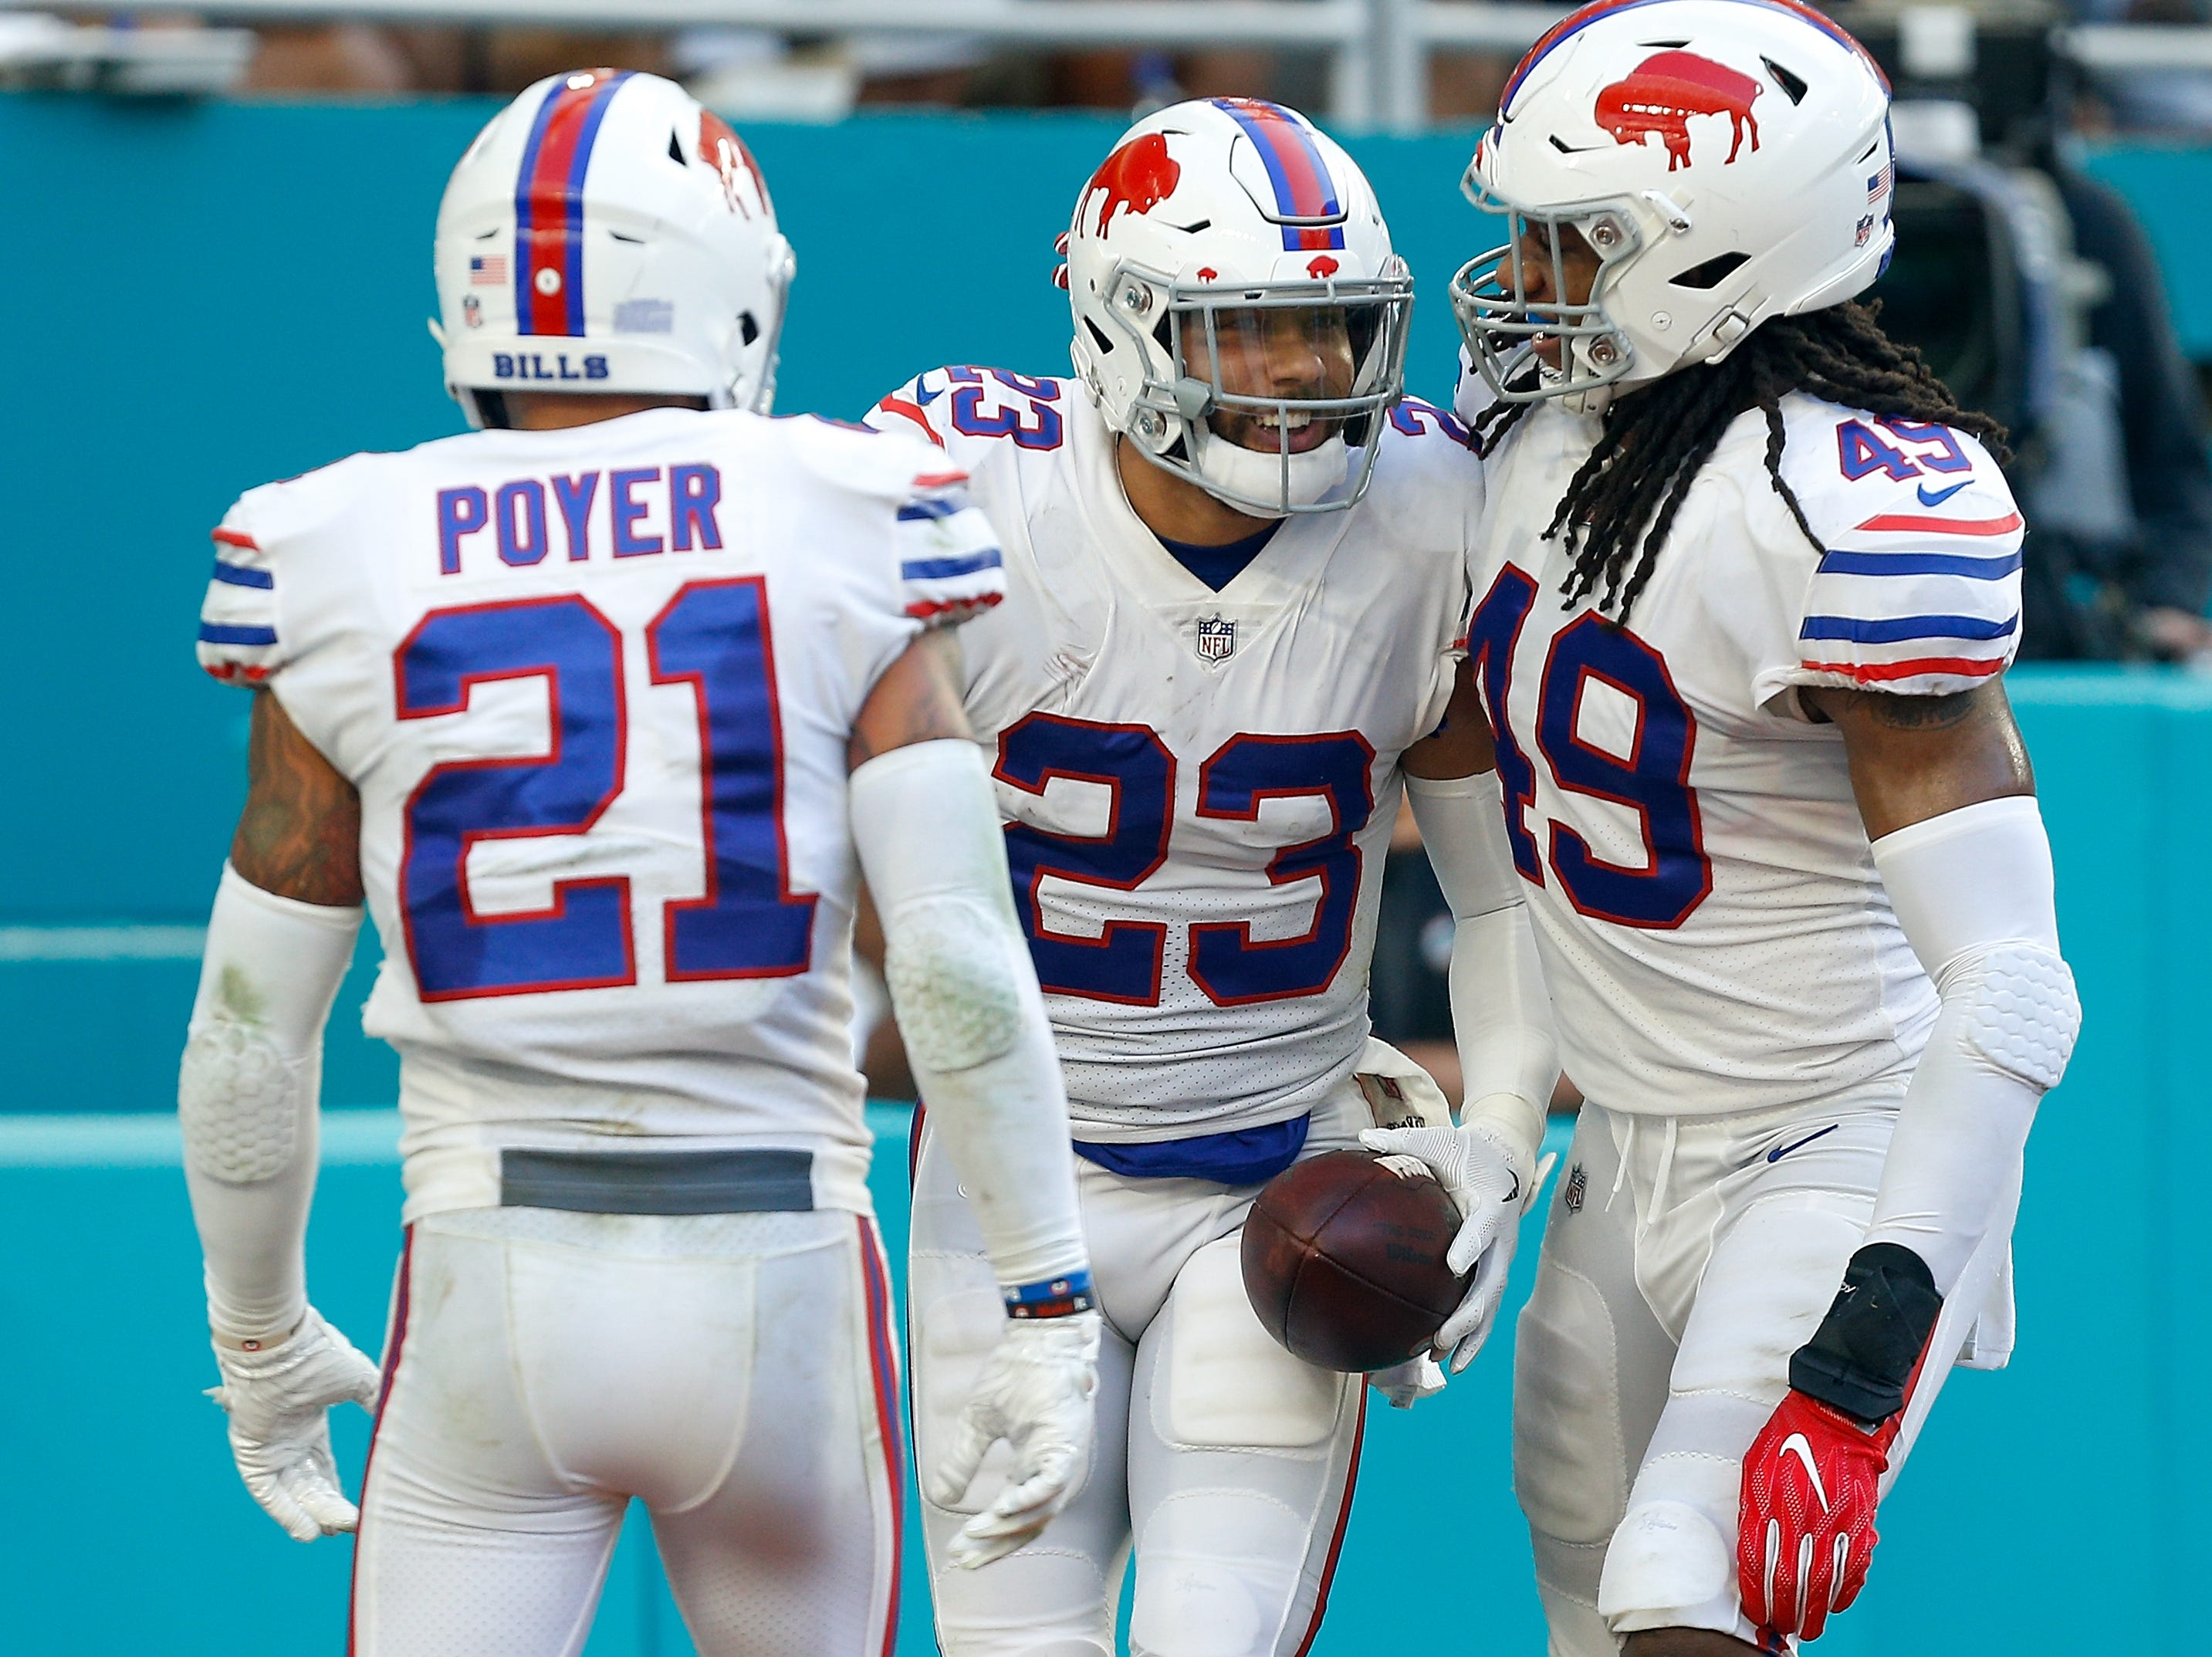 MIAMI, FL - DECEMBER 02: Micah Hyde #23 of the Buffalo Bills celebrates with teammate after making the interception during the second half against the Miami Dolphins at Hard Rock Stadium on December 2, 2018 in Miami, Florida.  (Photo by Michael Reaves/Getty Images)